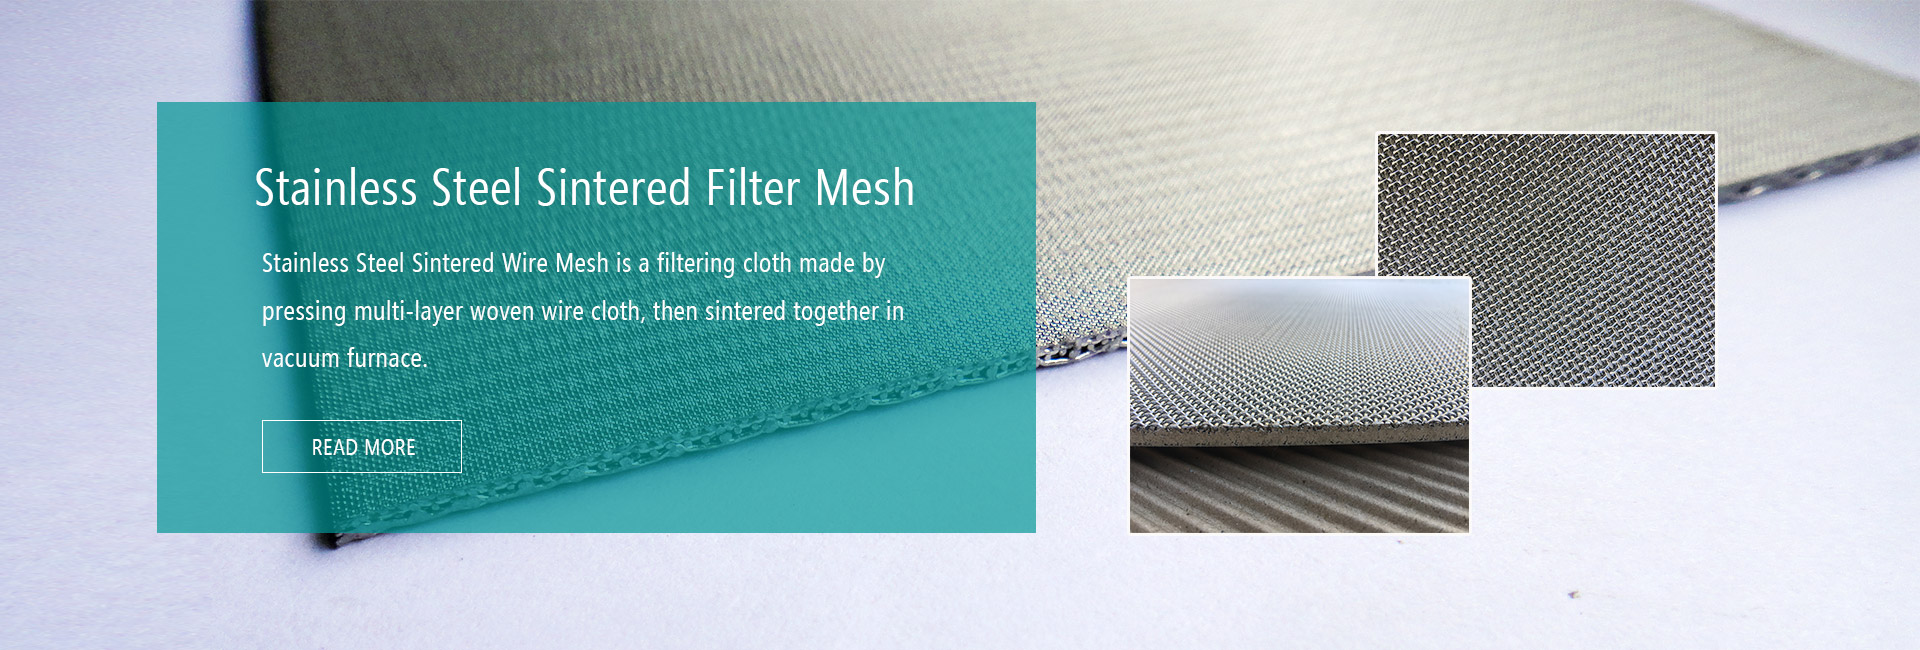 stainless-steel-sintered-filter-mesh